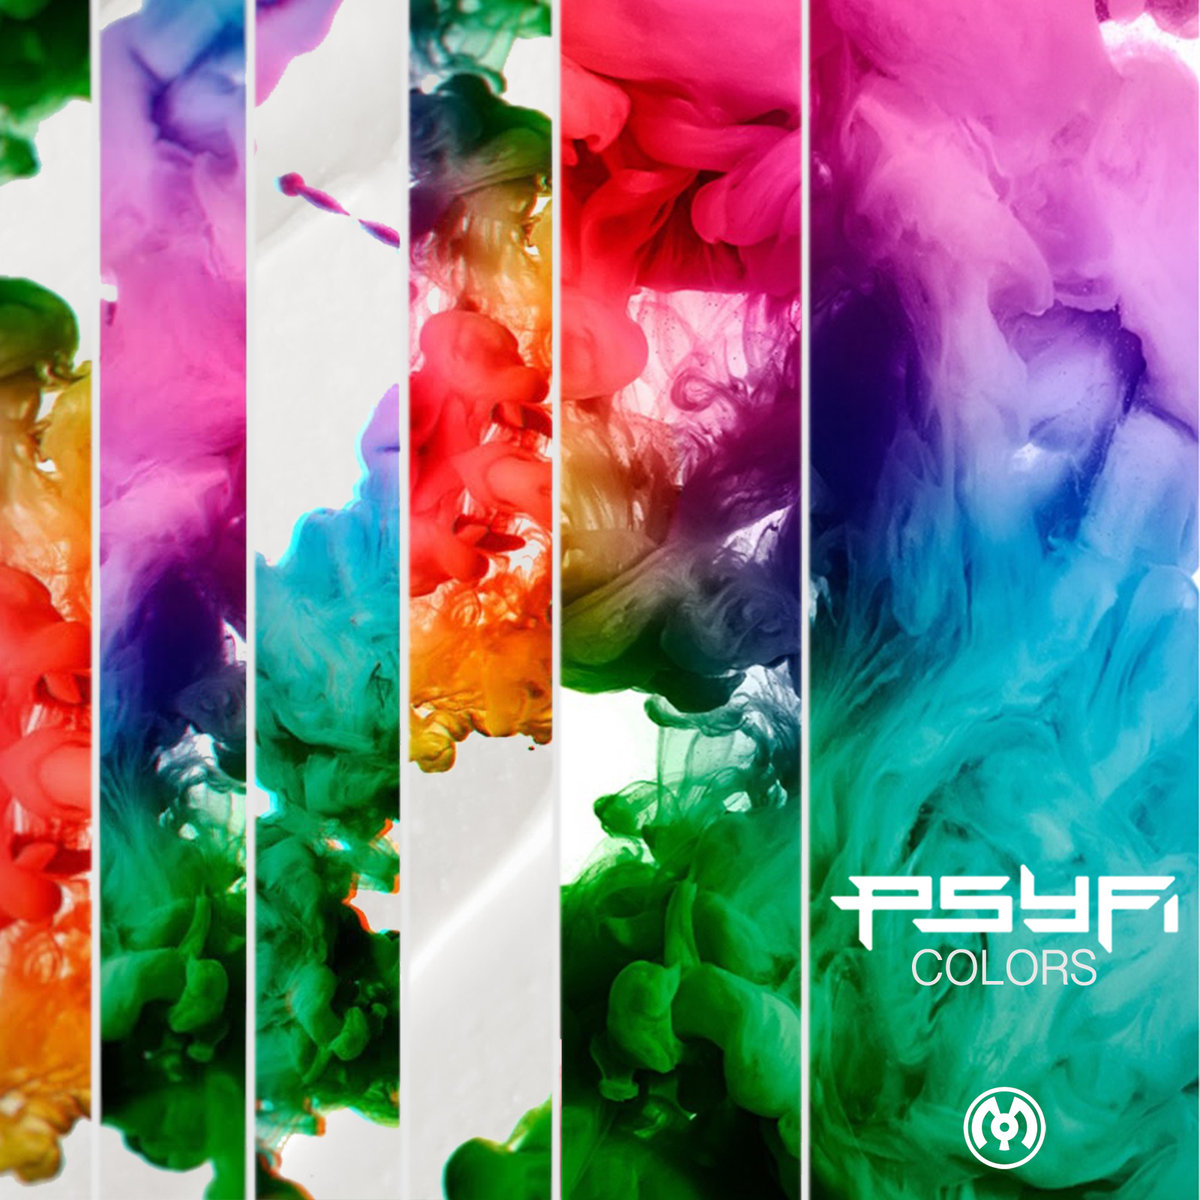 Psy Fi - Colors @ 'Colors' album (electronic, dubstep)